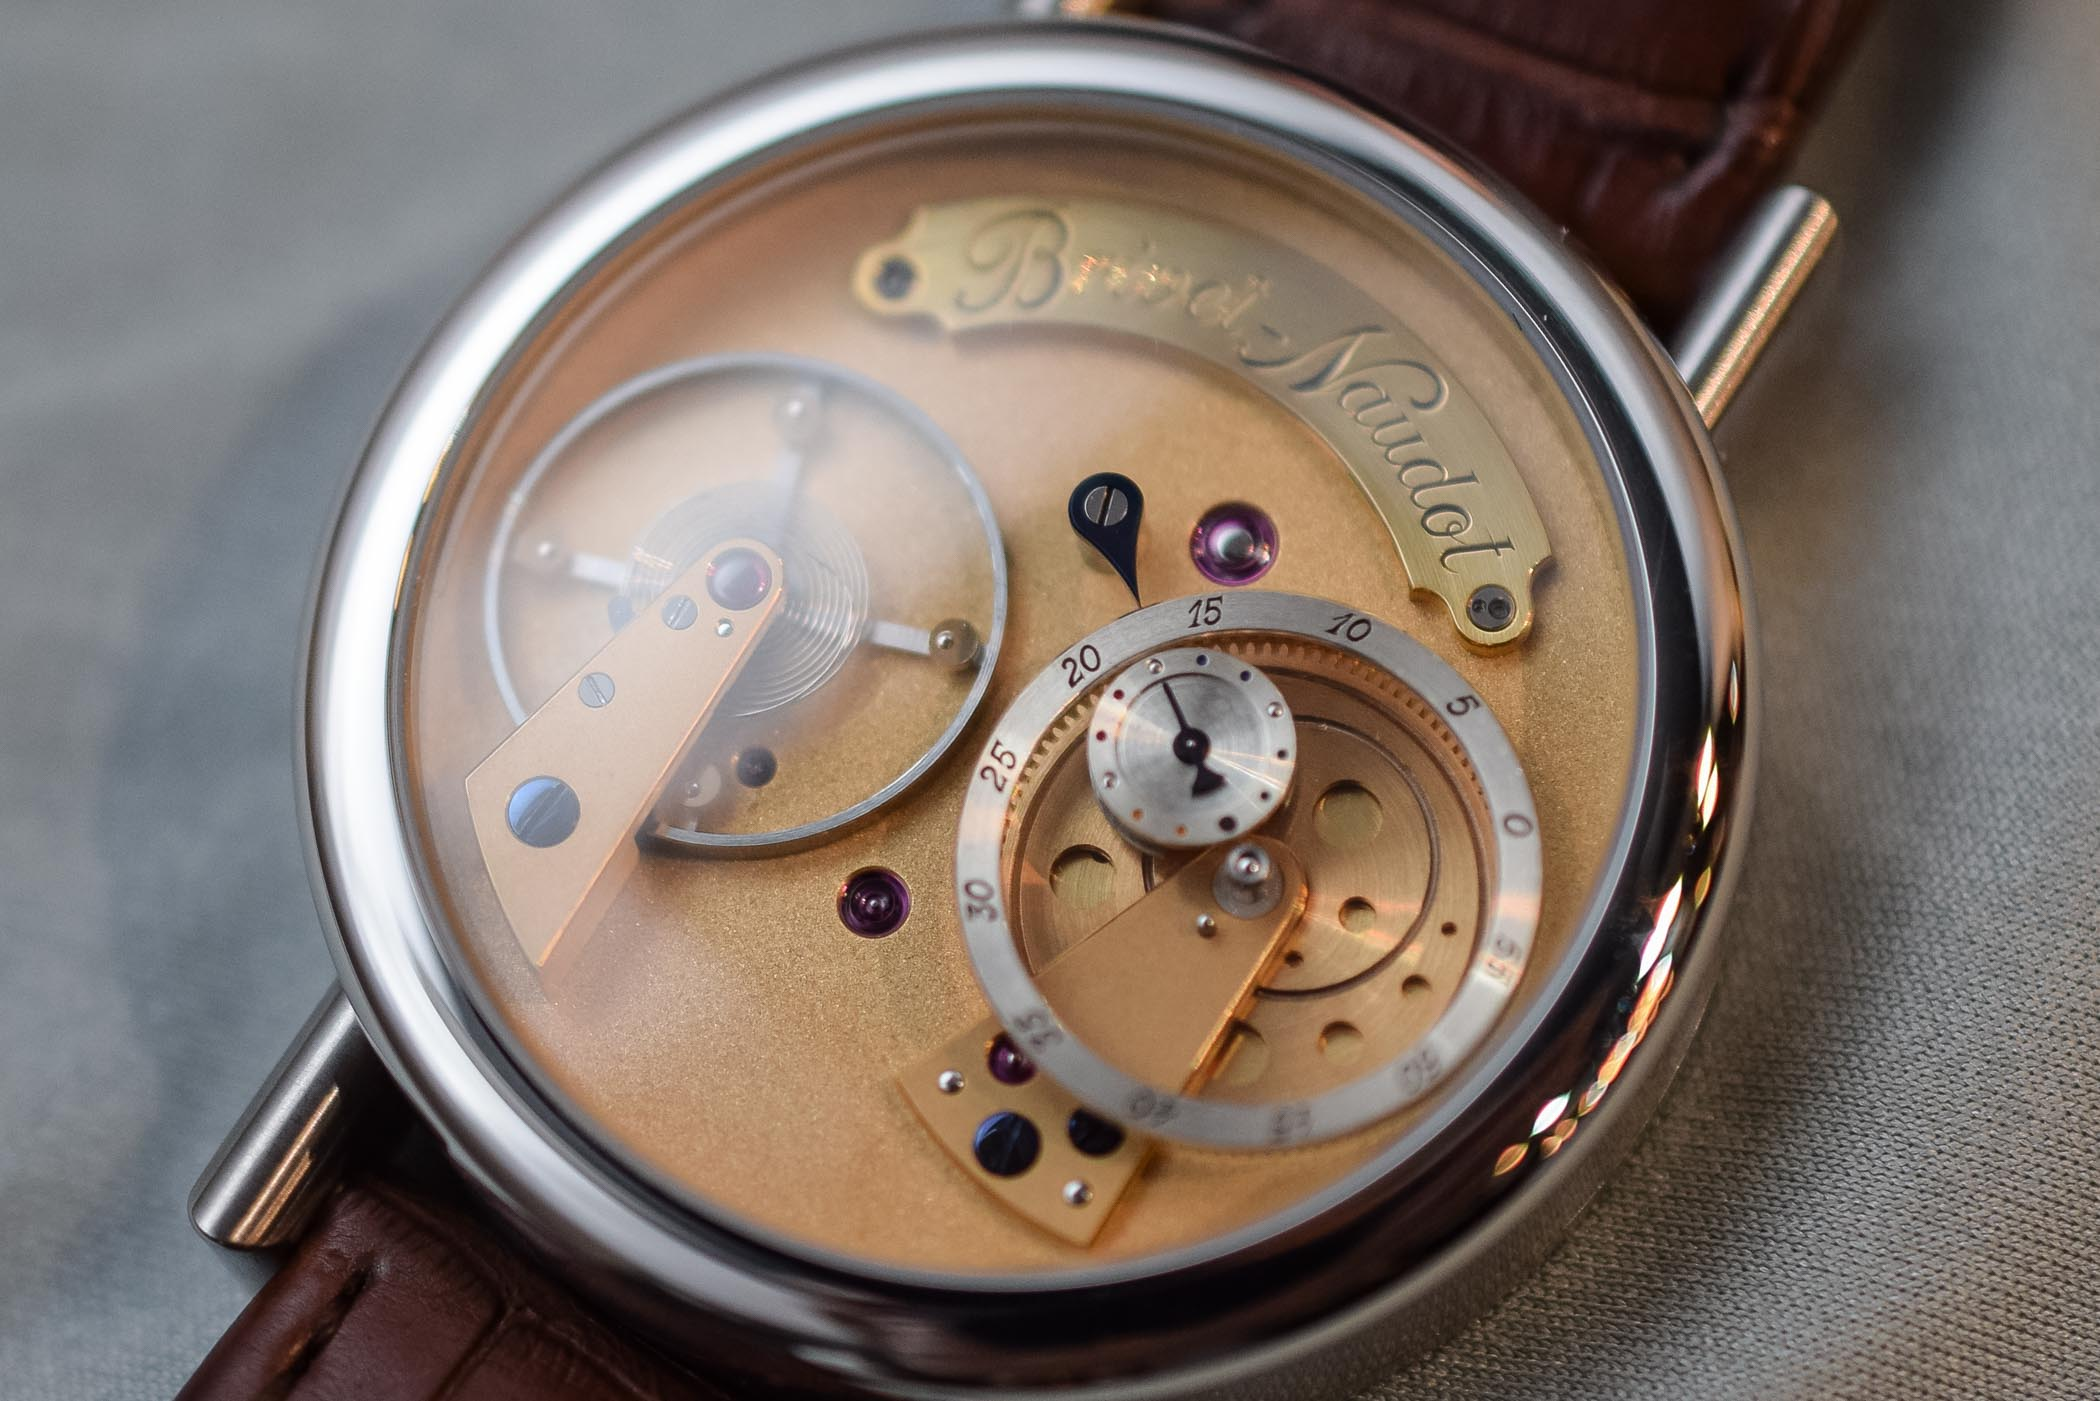 Cyril Brivet-Naudot Eccentricity Watch - Independent Watchmaking